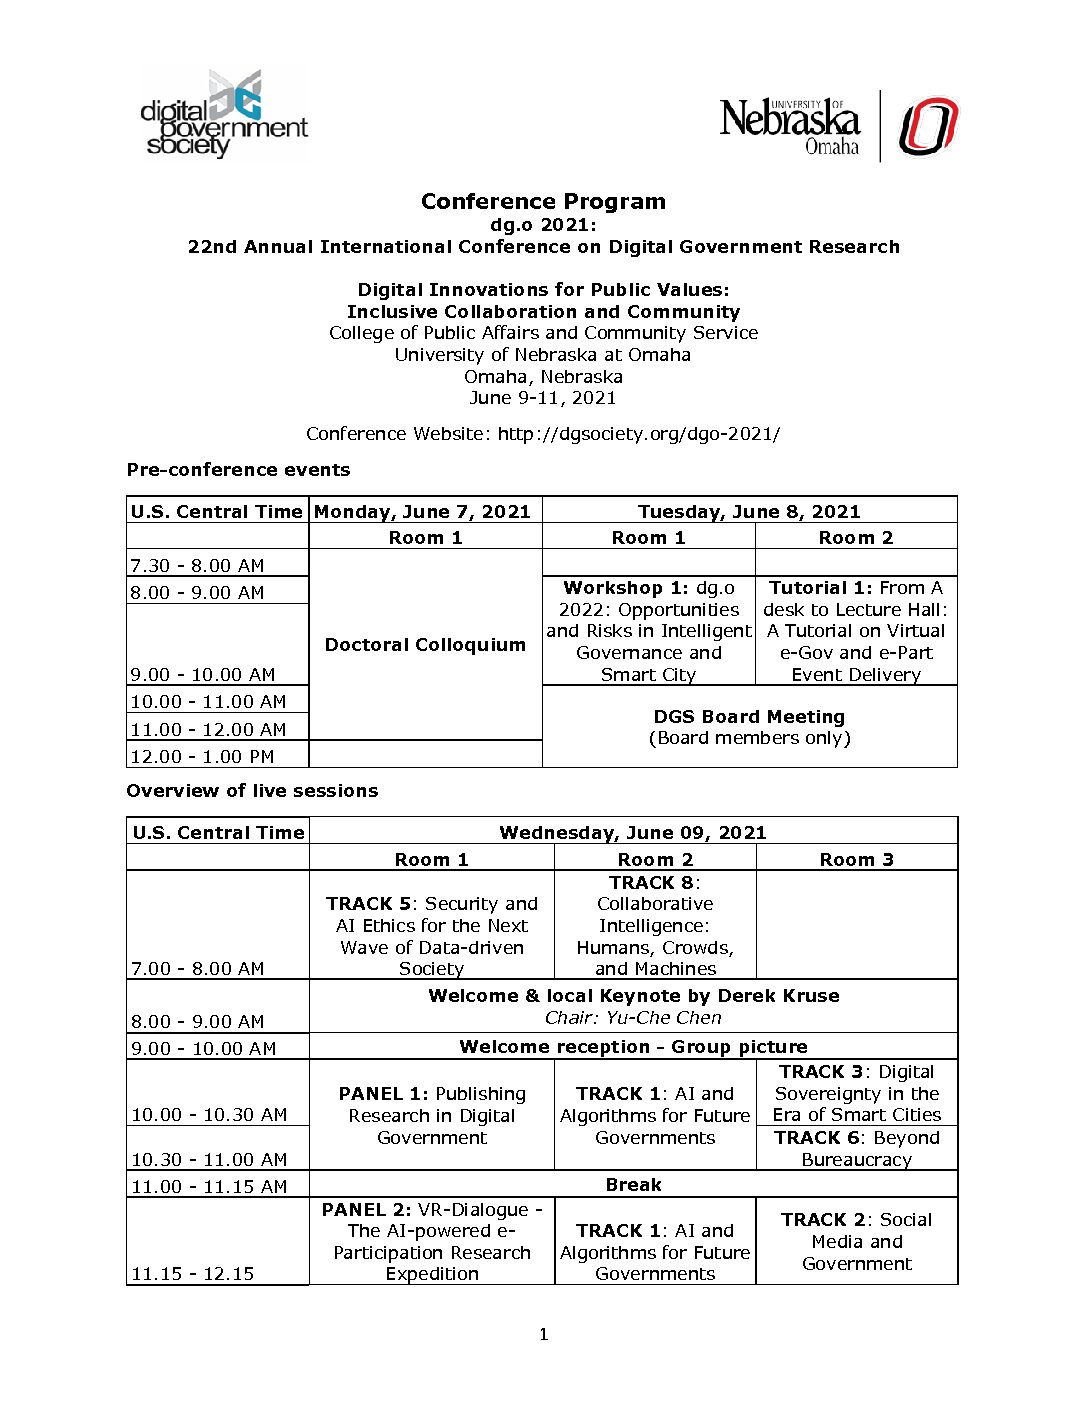 Download a Full Conference Program